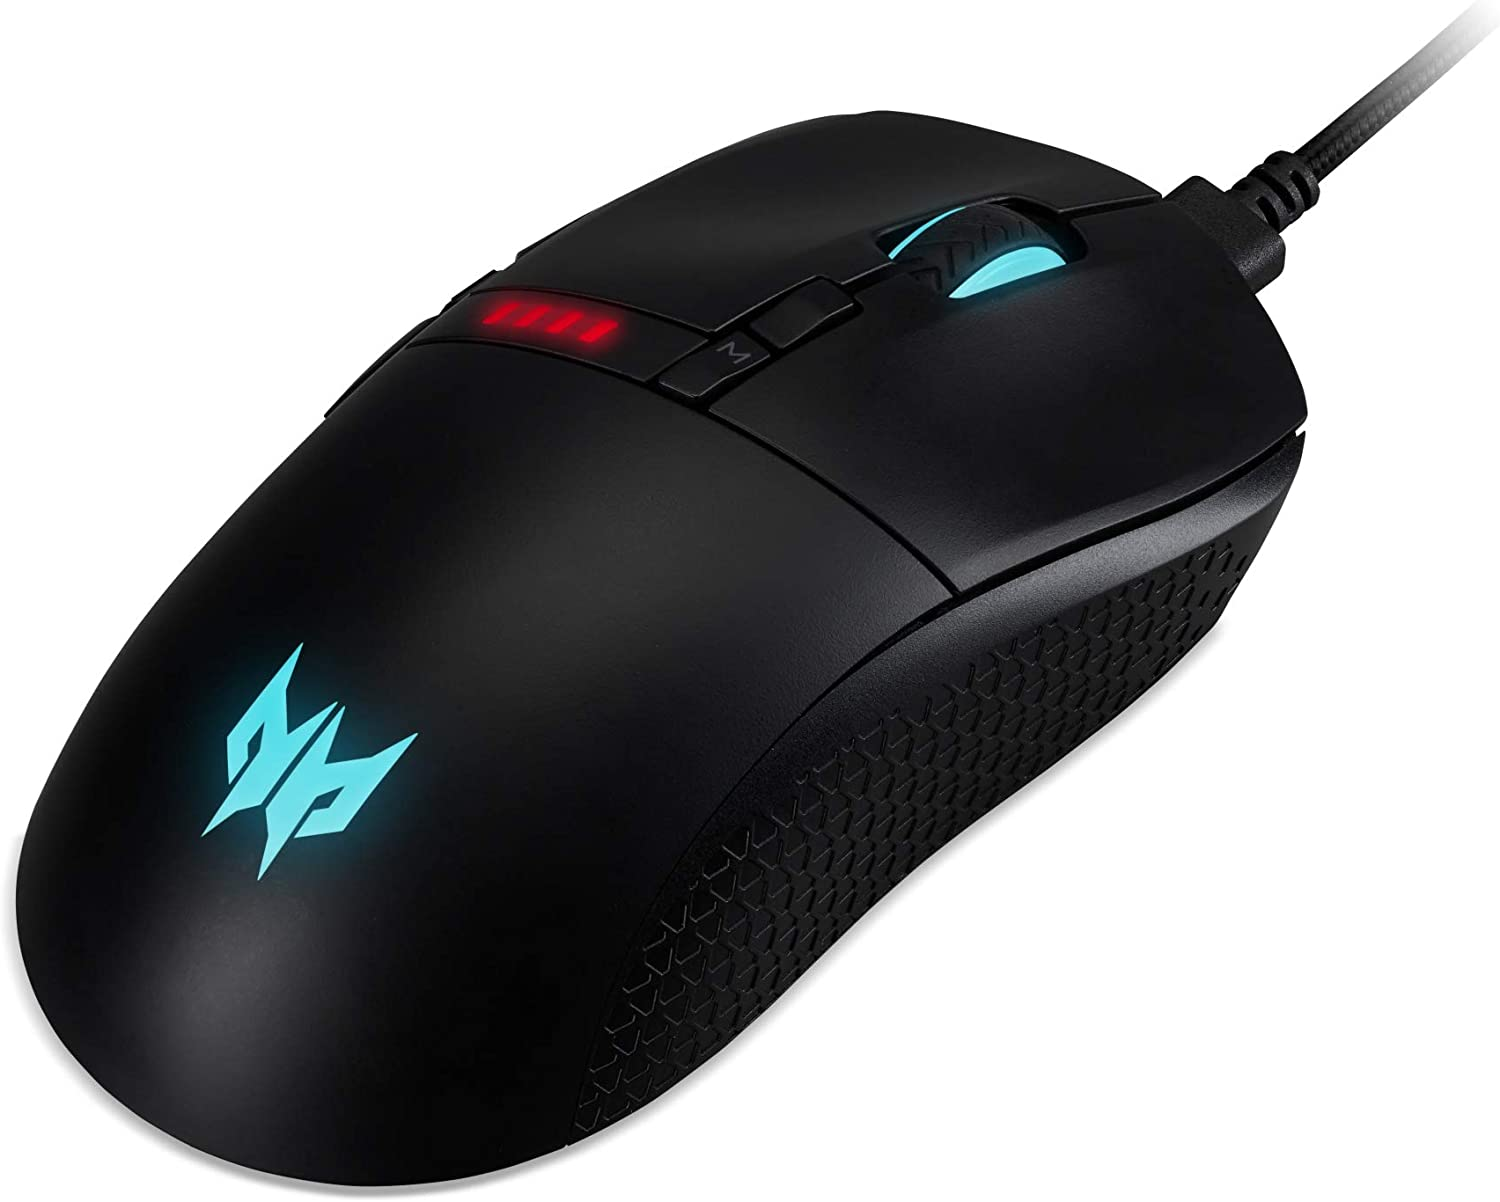 Acer Predator Cestus 350 Gaming Mouse Black Computers Accessories